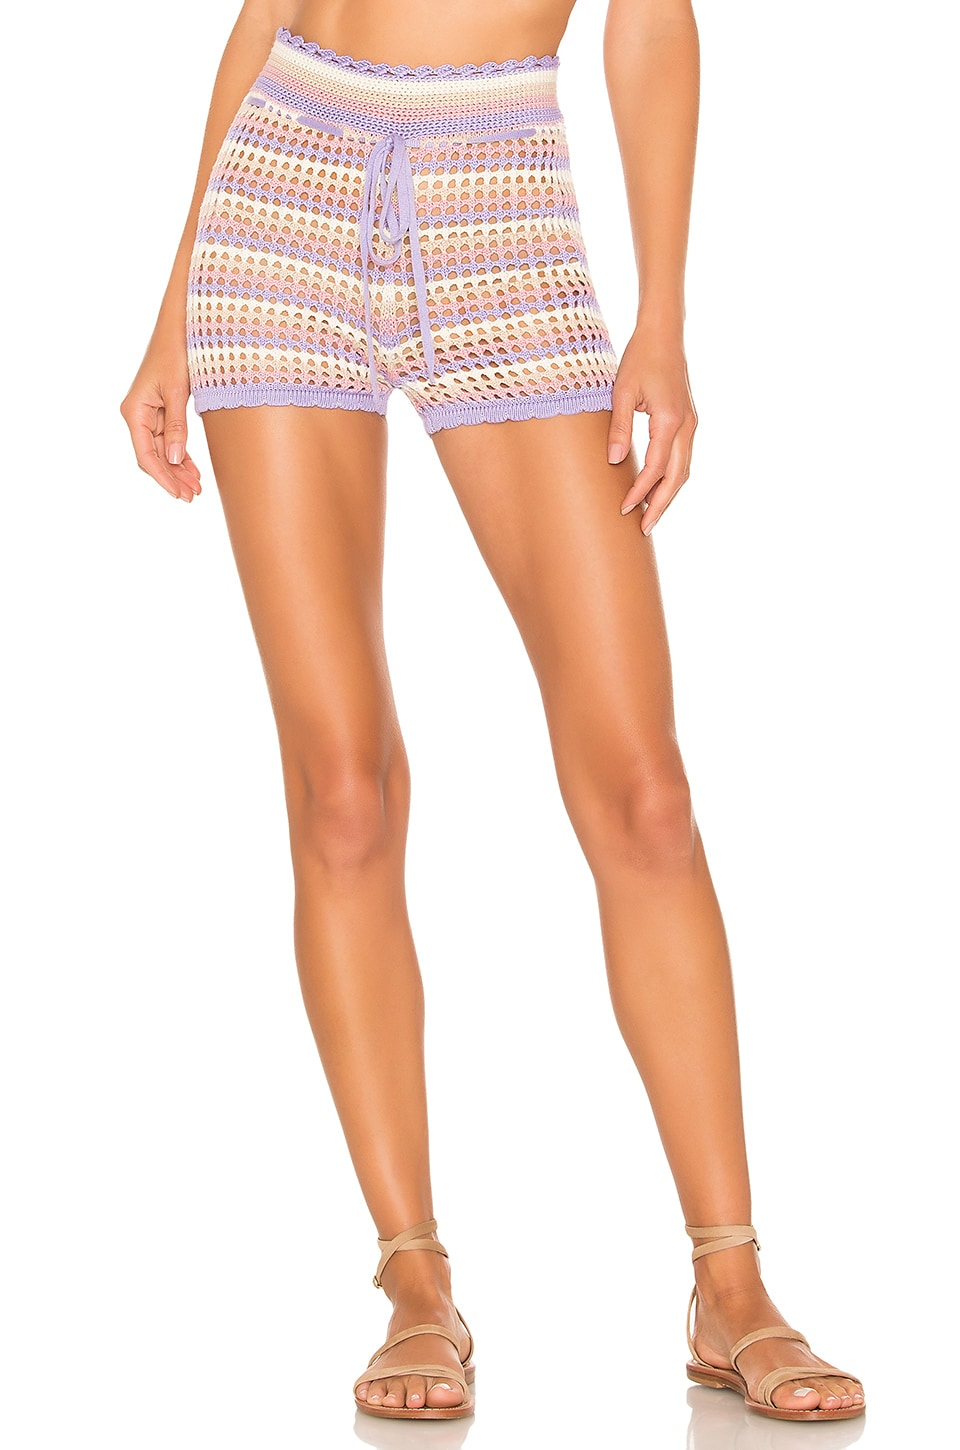 House of Harlow 1960 x REVOLVE Canyon Short in Lavender Stripe